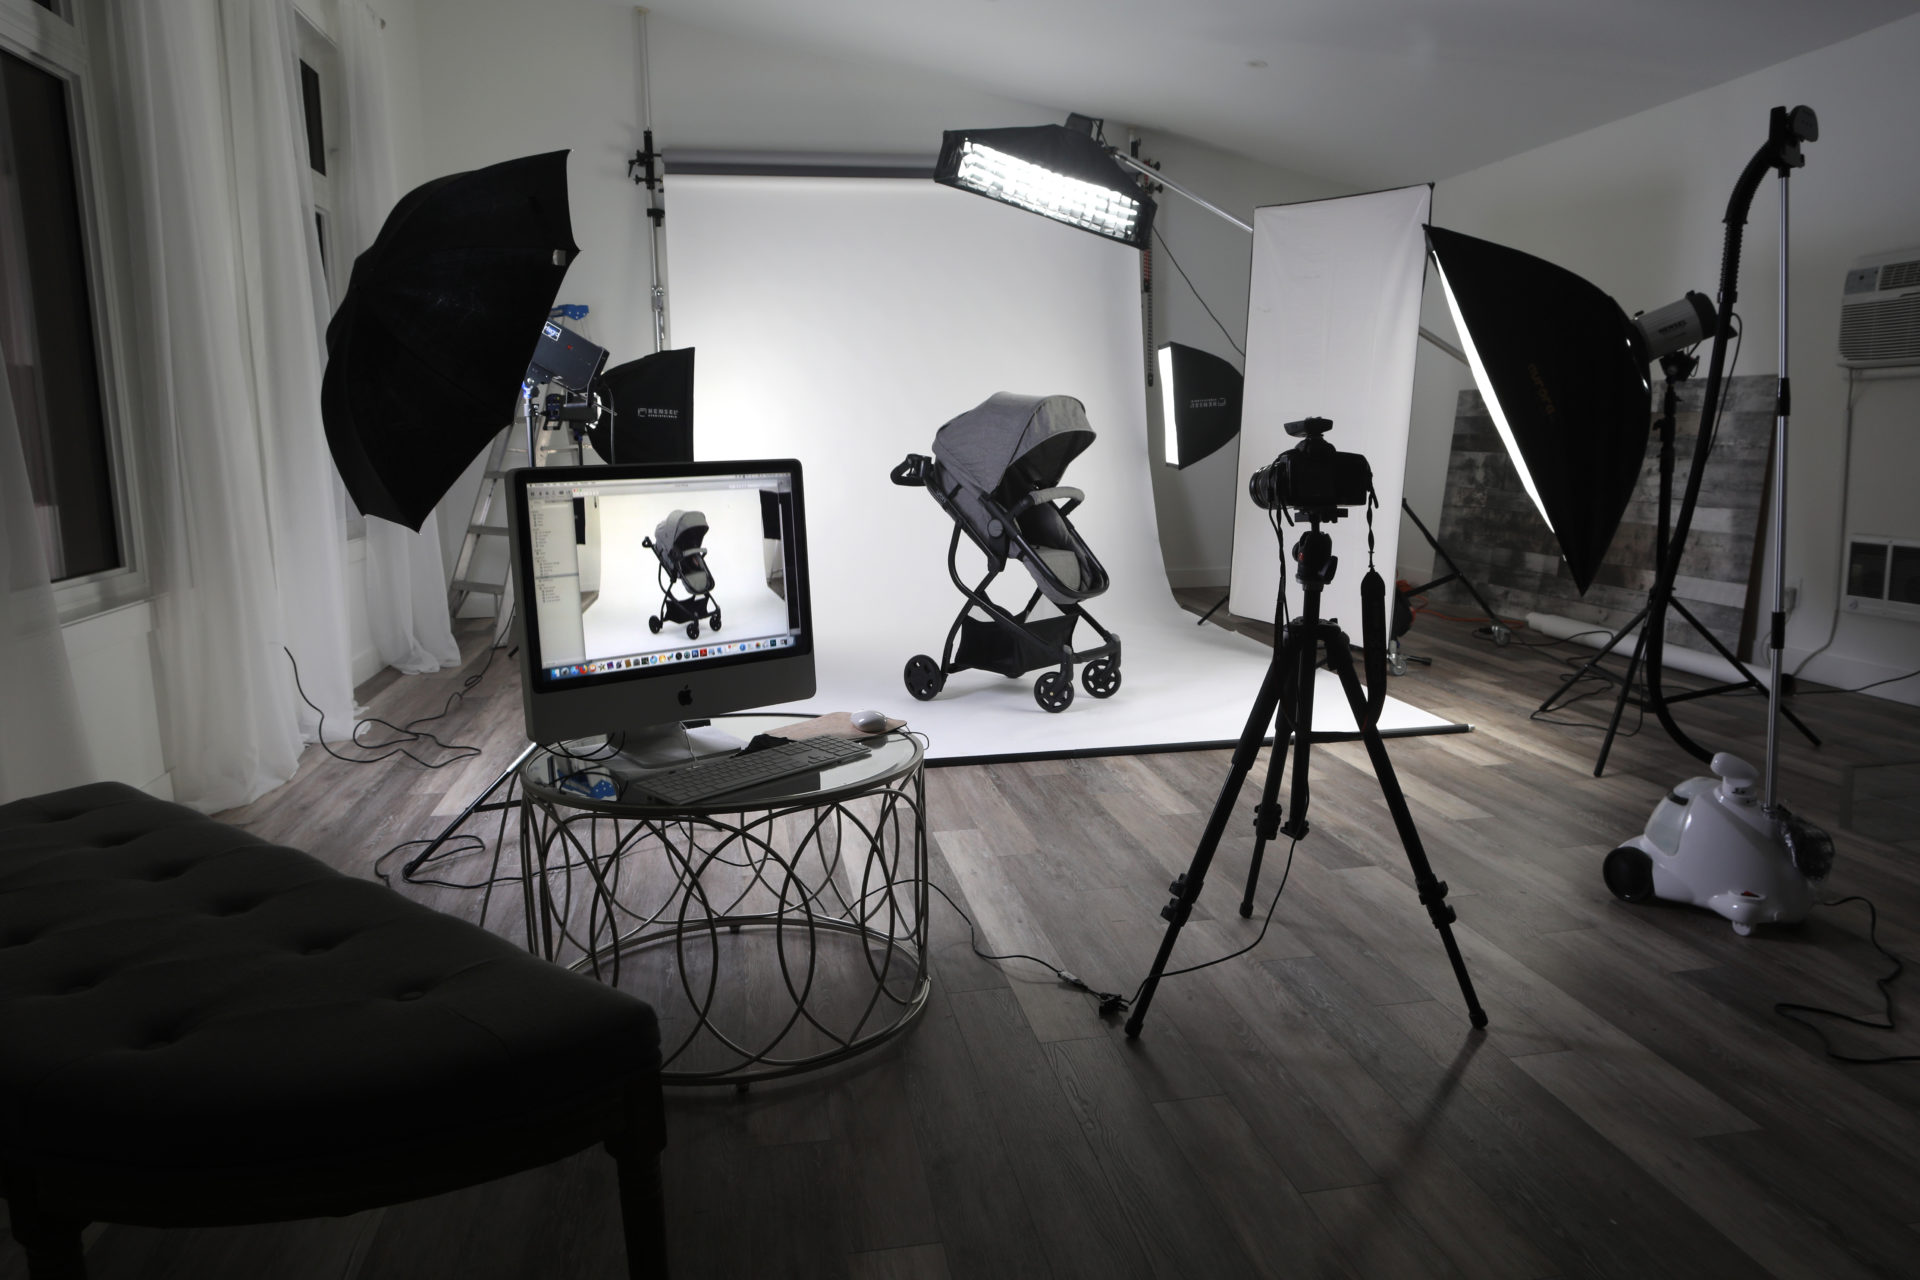 black and white photo of photography studio with lights and photograph equipment, professional online product photography